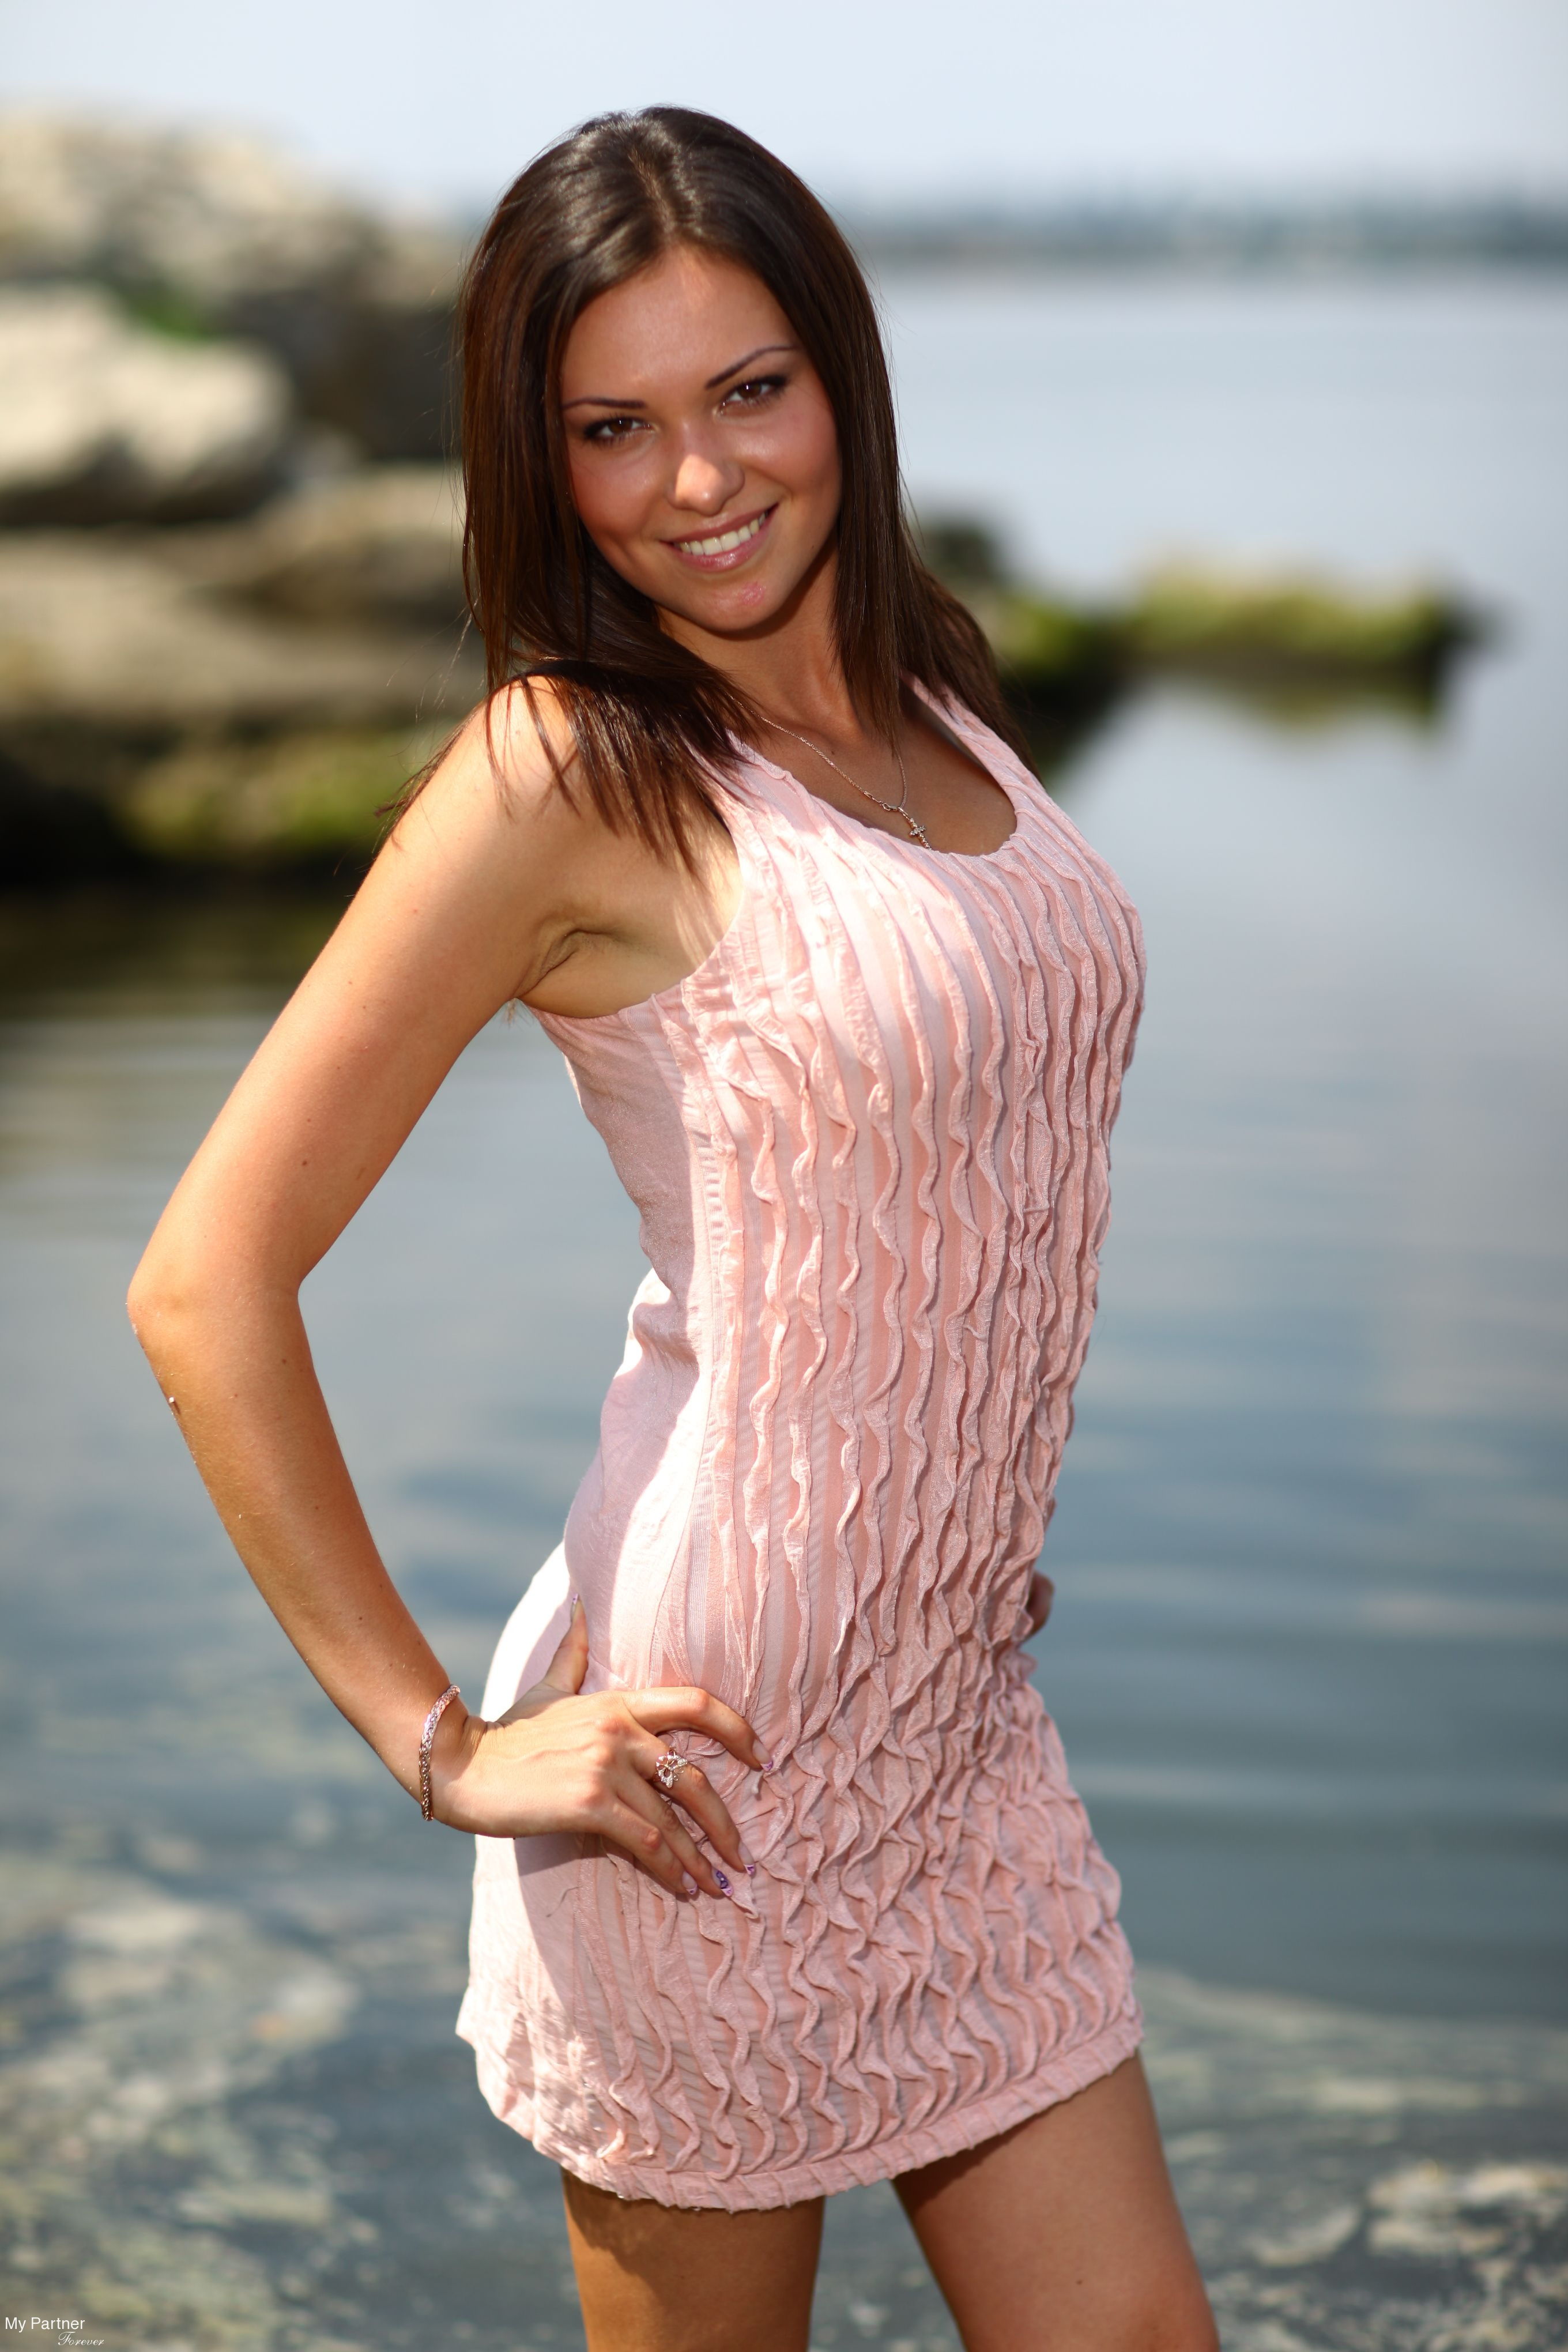 russian dating cruises Free russian dating service, russian mail order brides.